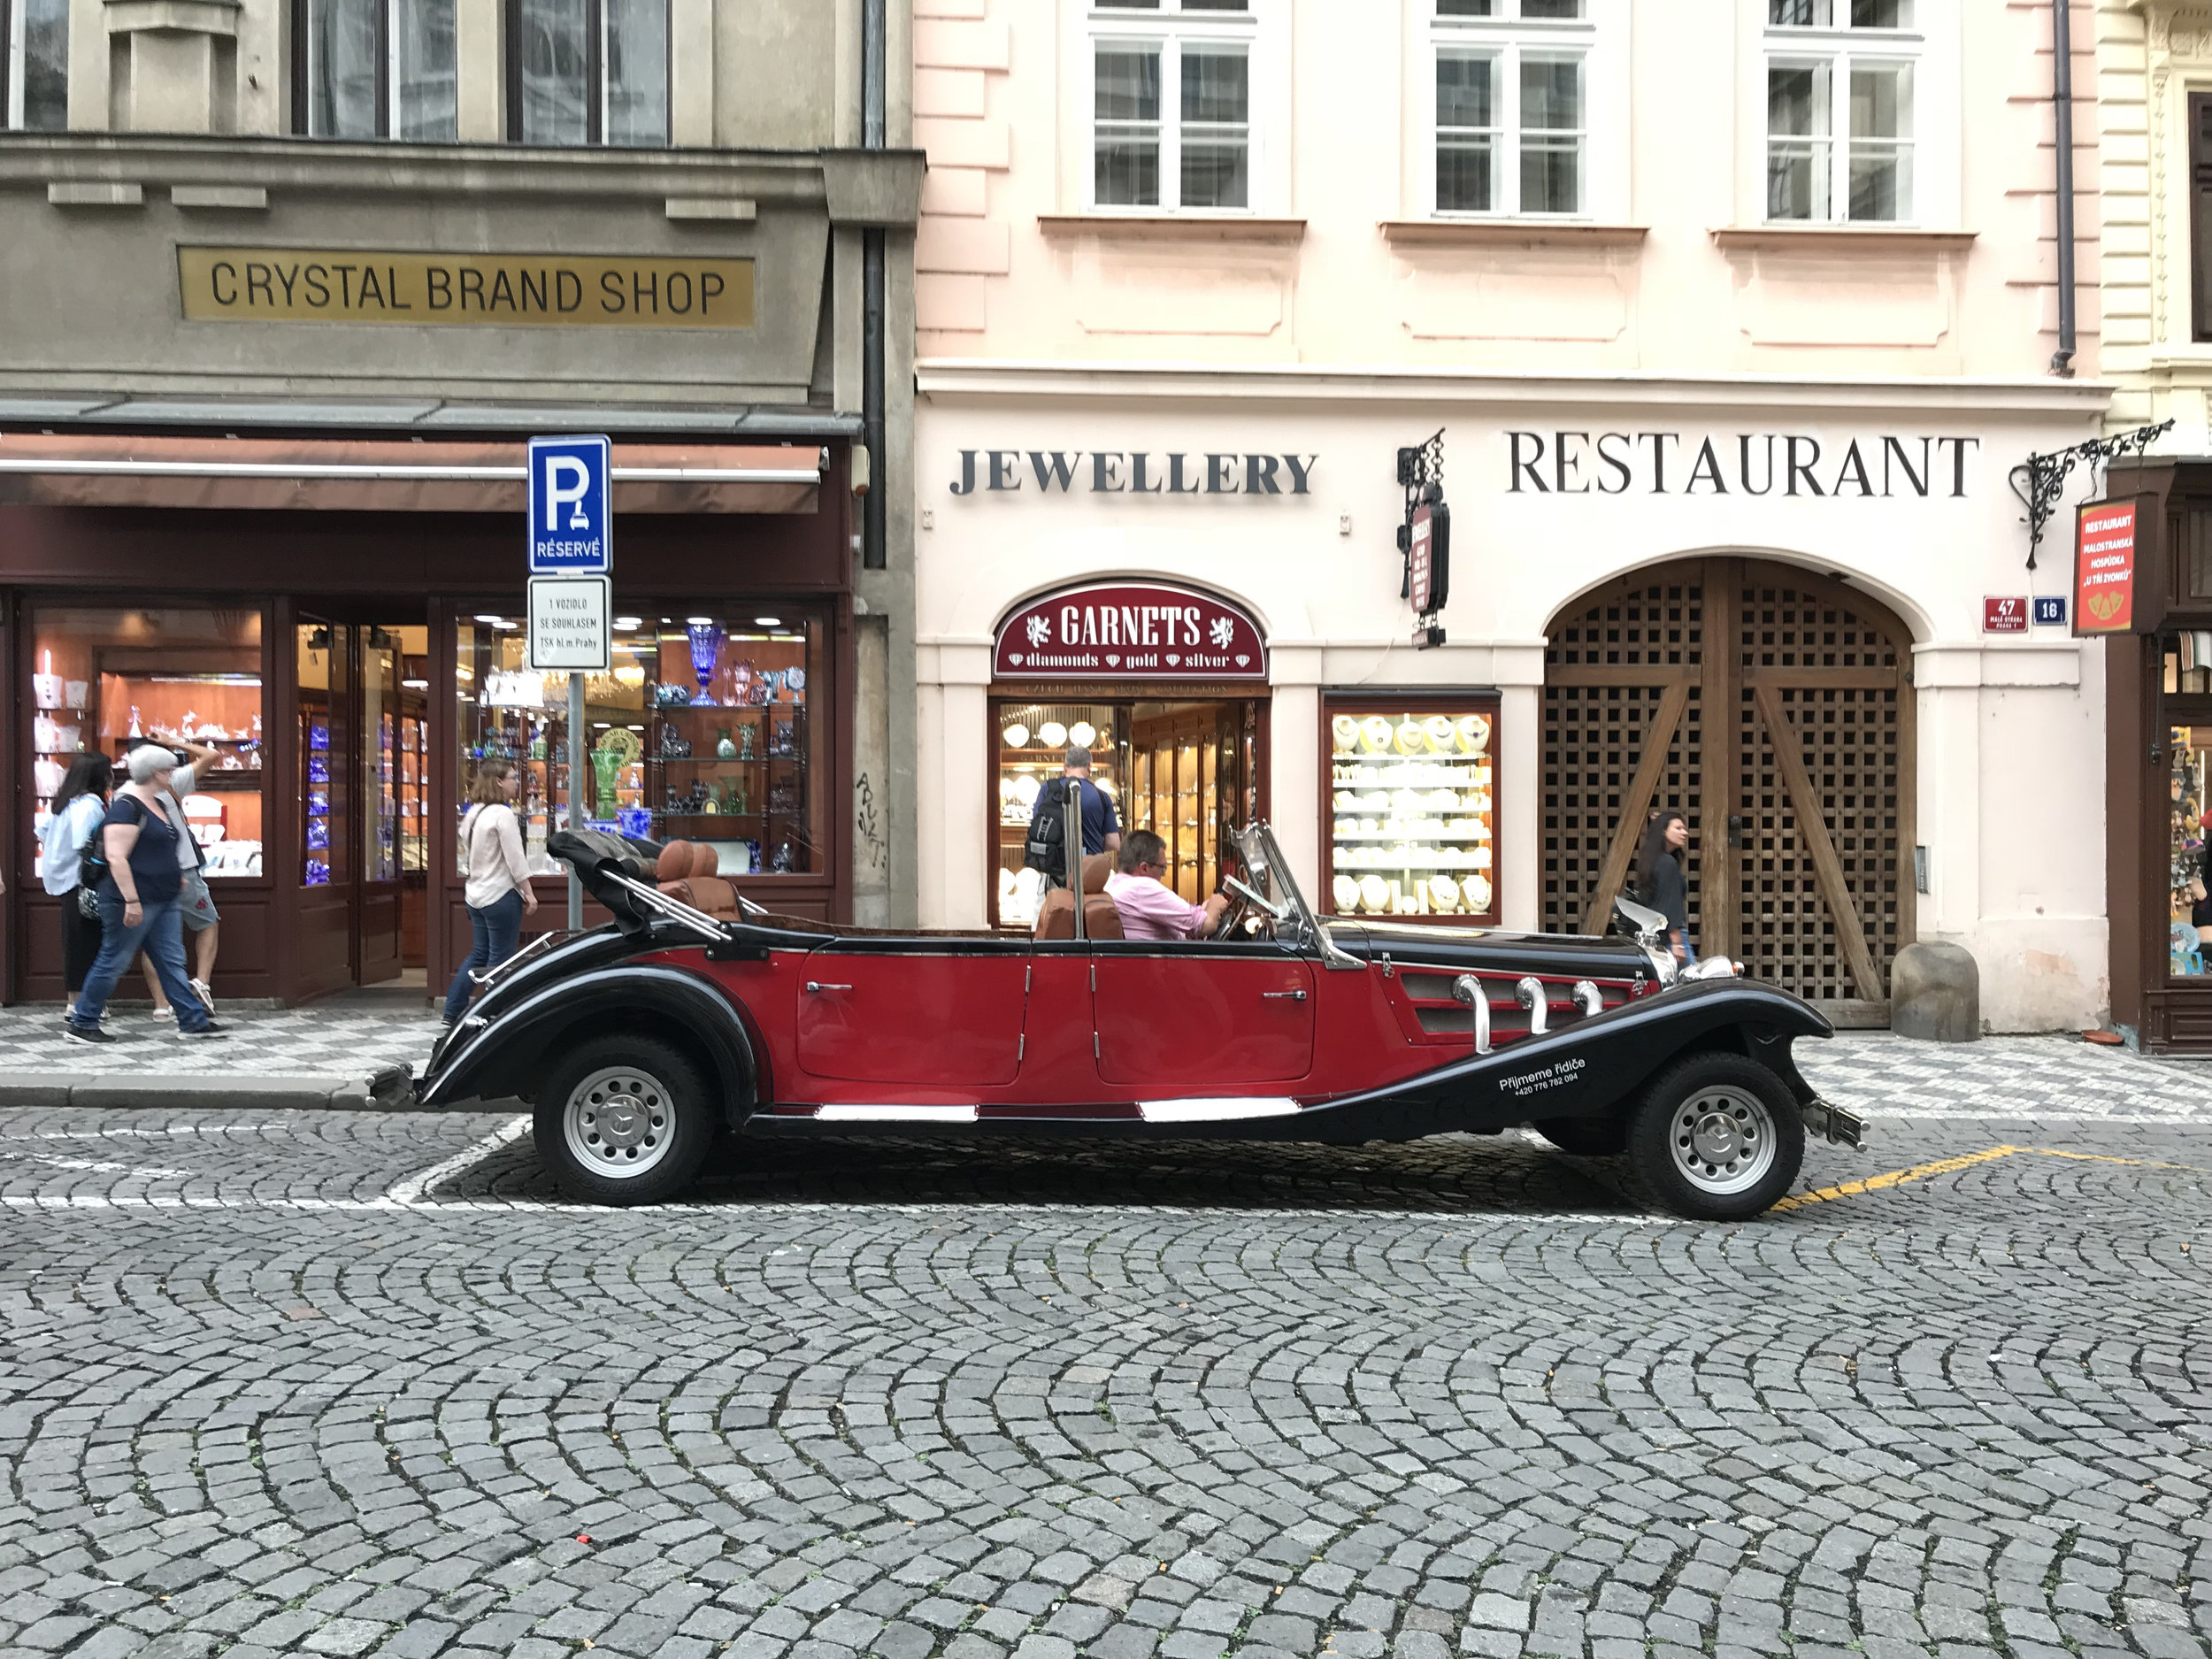 teri_Prague_TopTouringCars_spiritedtable_photo1.jpg